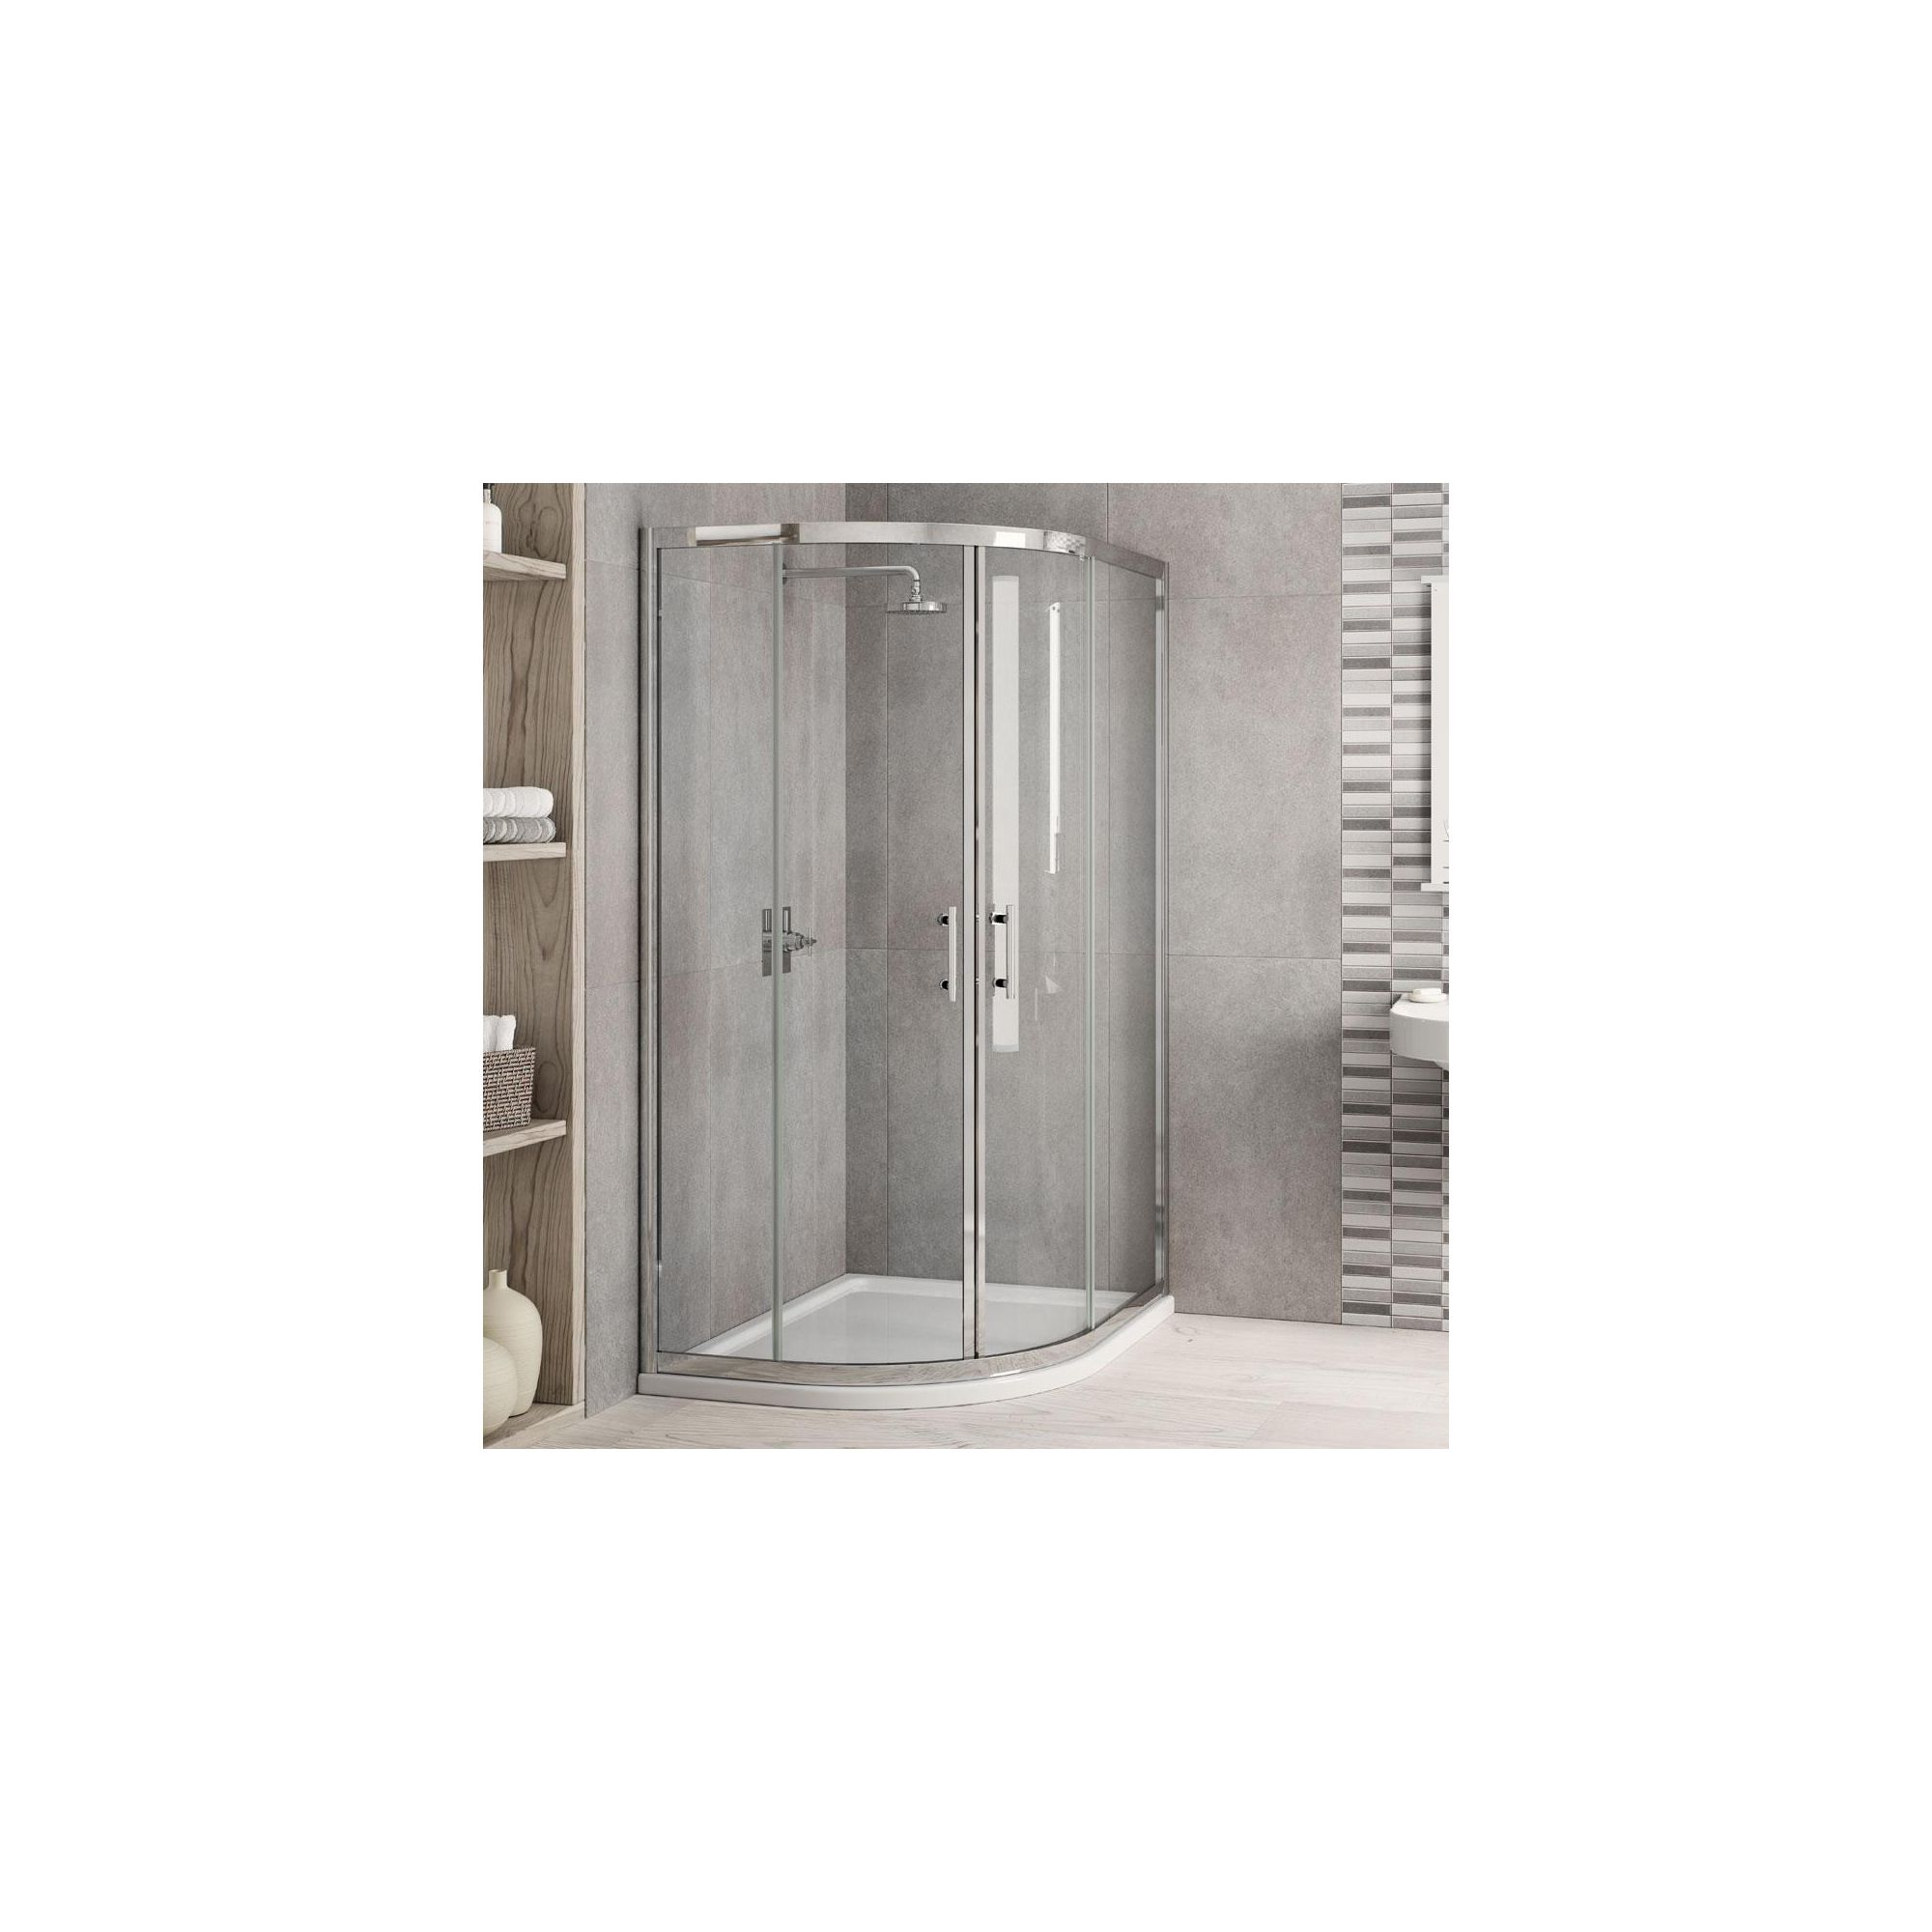 Elemis Inspire Offset Quadrant Shower Enclosure, 1000mm x 800mm, 6mm Glass, Low Profile Tray, Right Handed at Tesco Direct